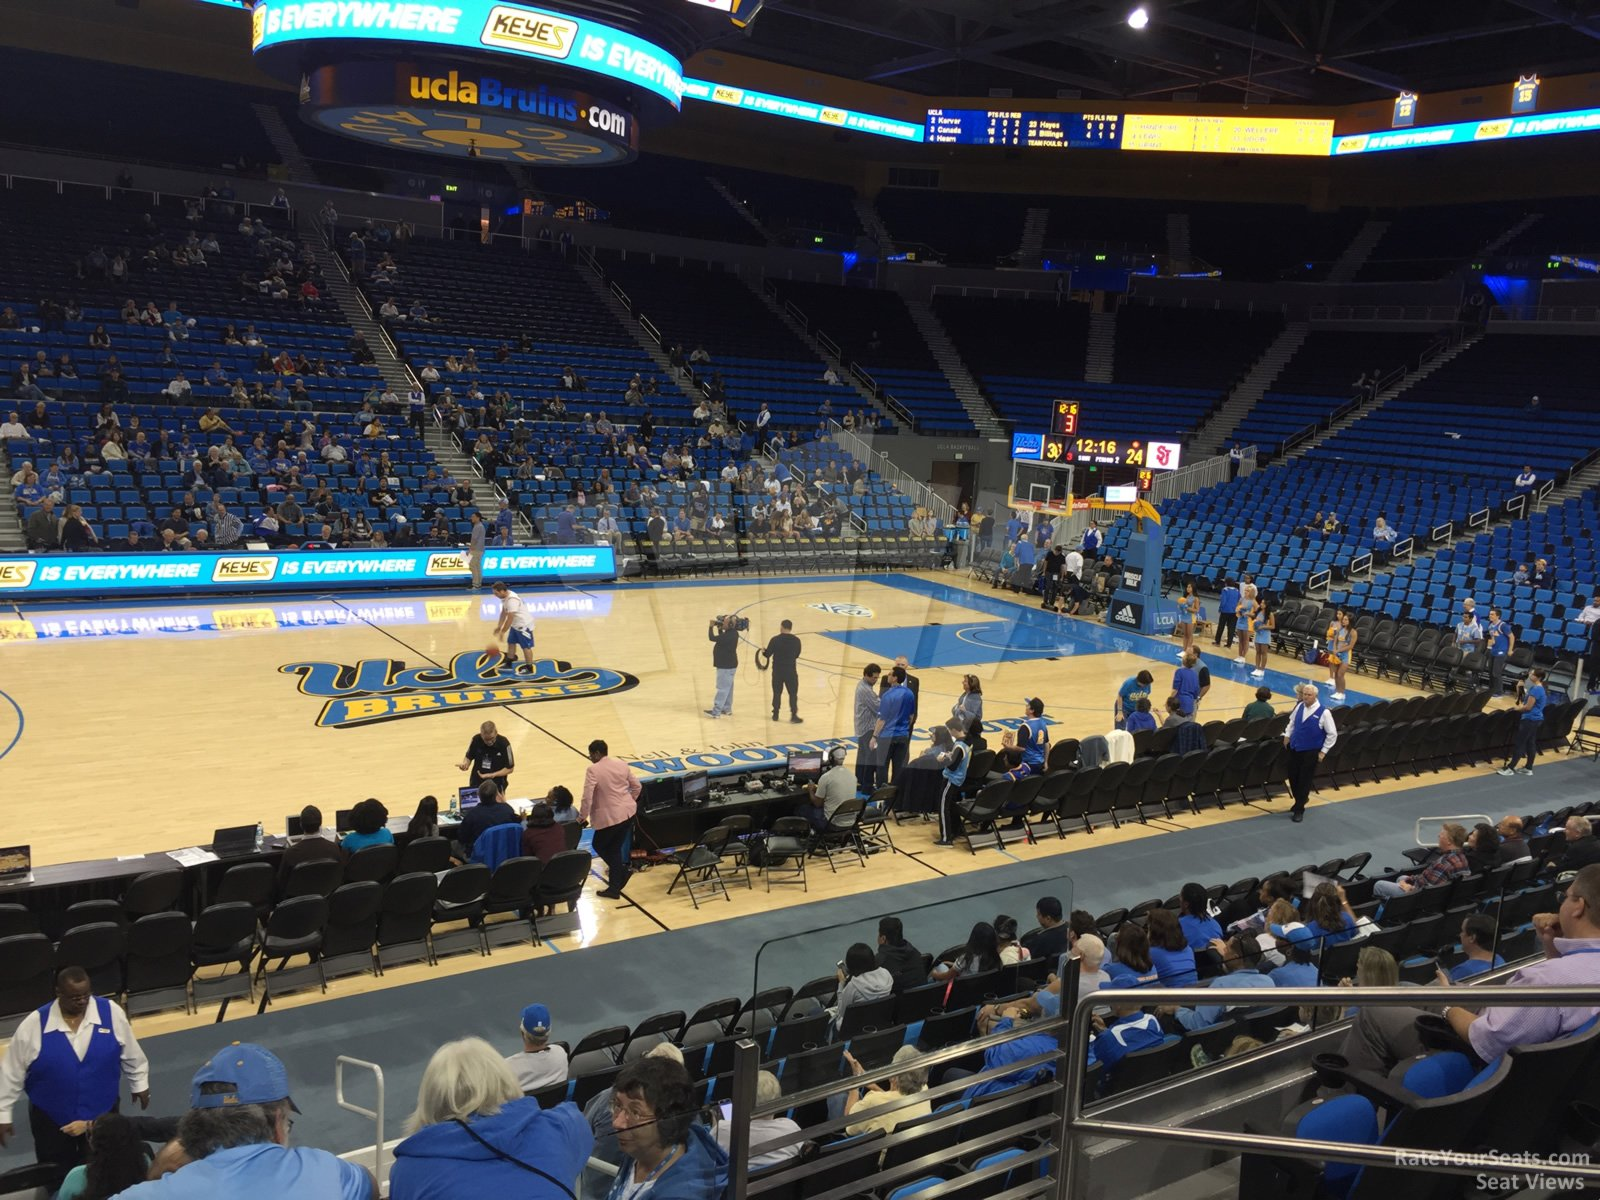 Seat View for Pauley Pavilion Section 116, Row 3